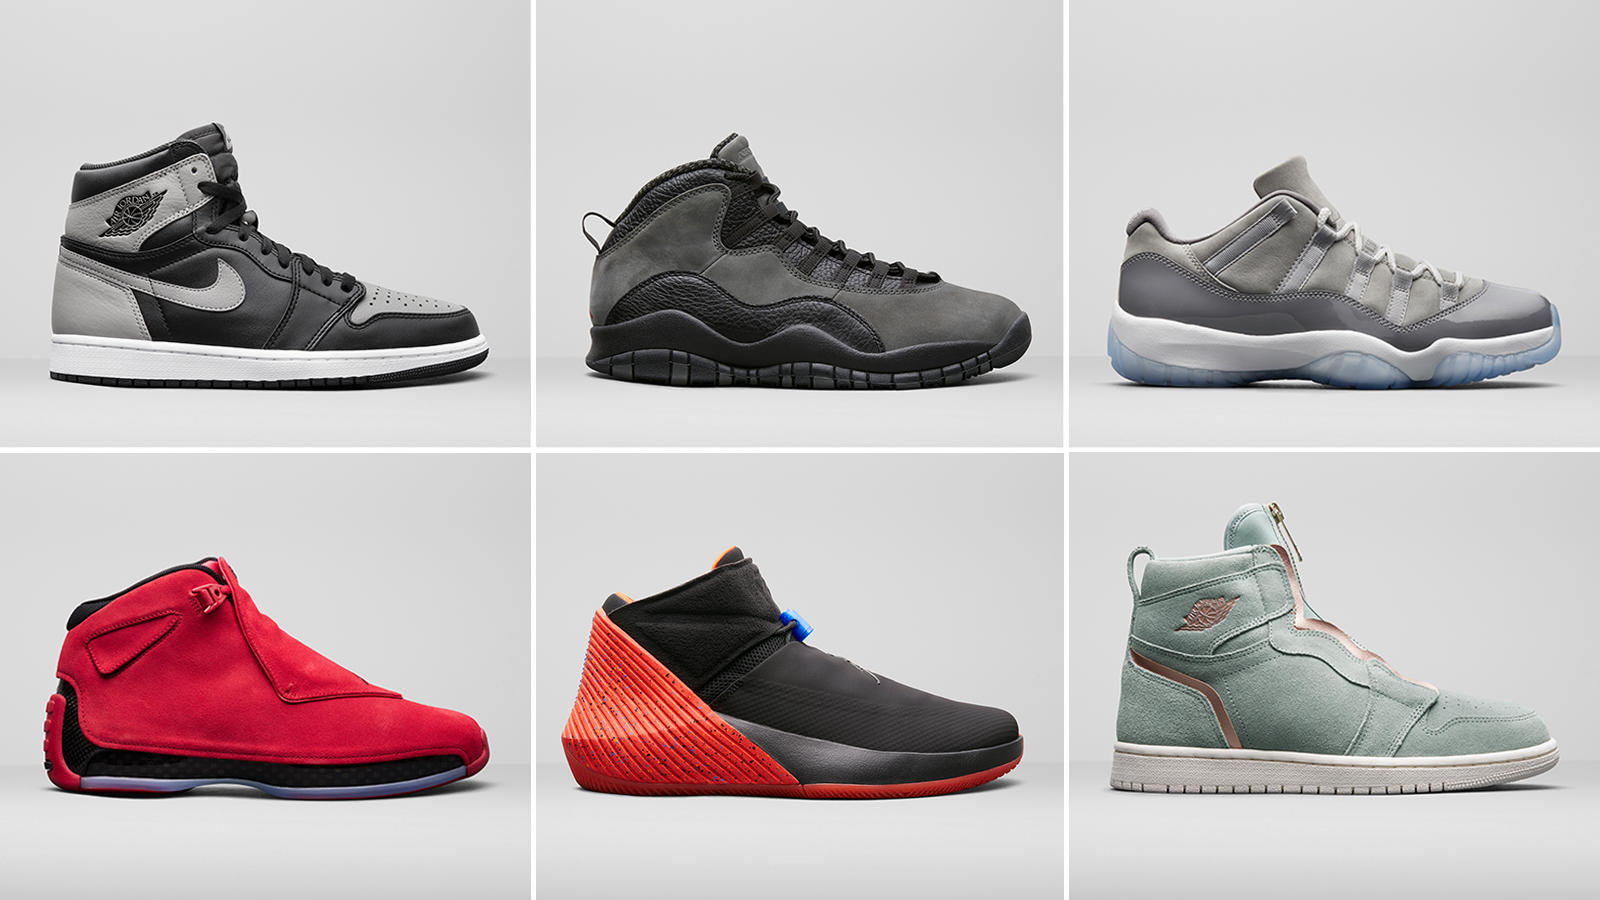 newest cf7e4 471d9 Jordan Brand Unveils Select Styles For Summer 2018 76